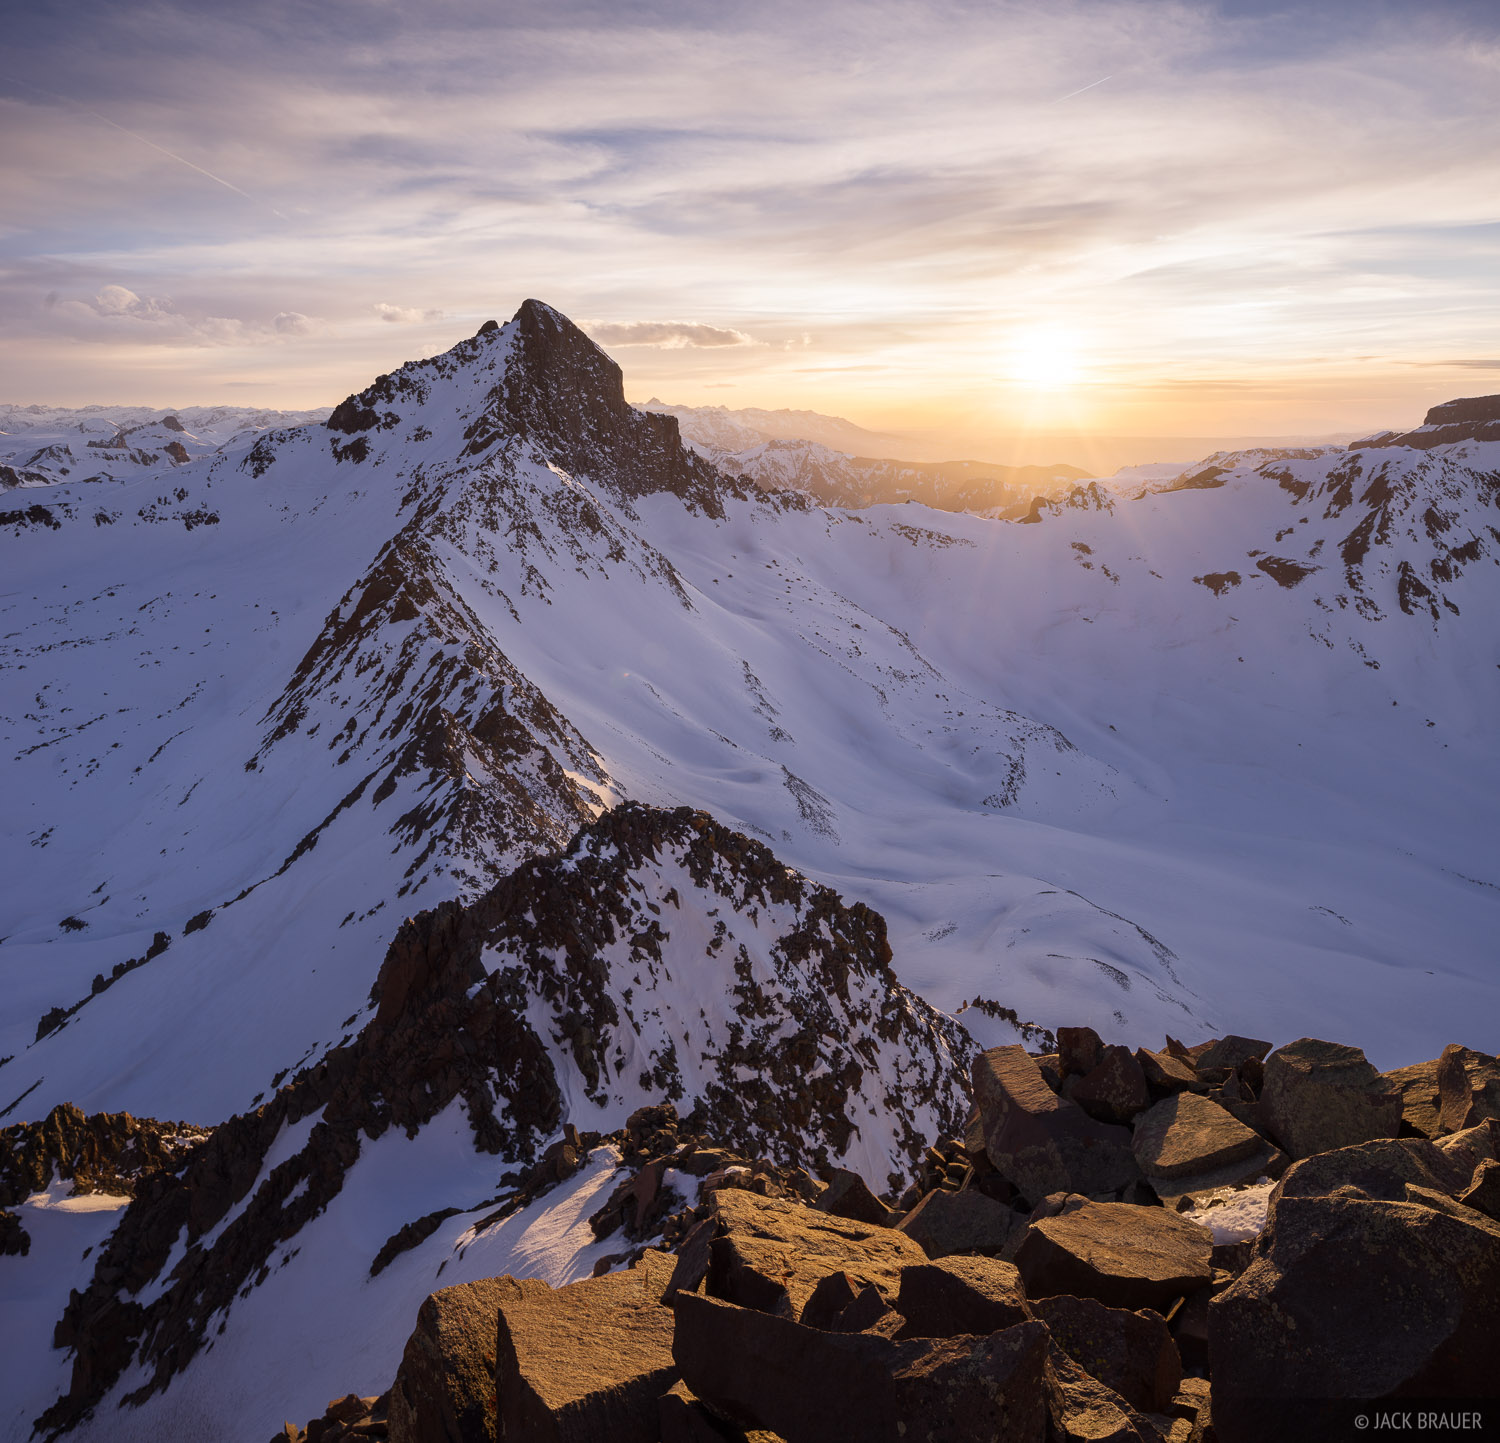 Colorado,San Juan Mountains,Uncompahgre Wilderness,Wetterhorn Peak, sunset, photo